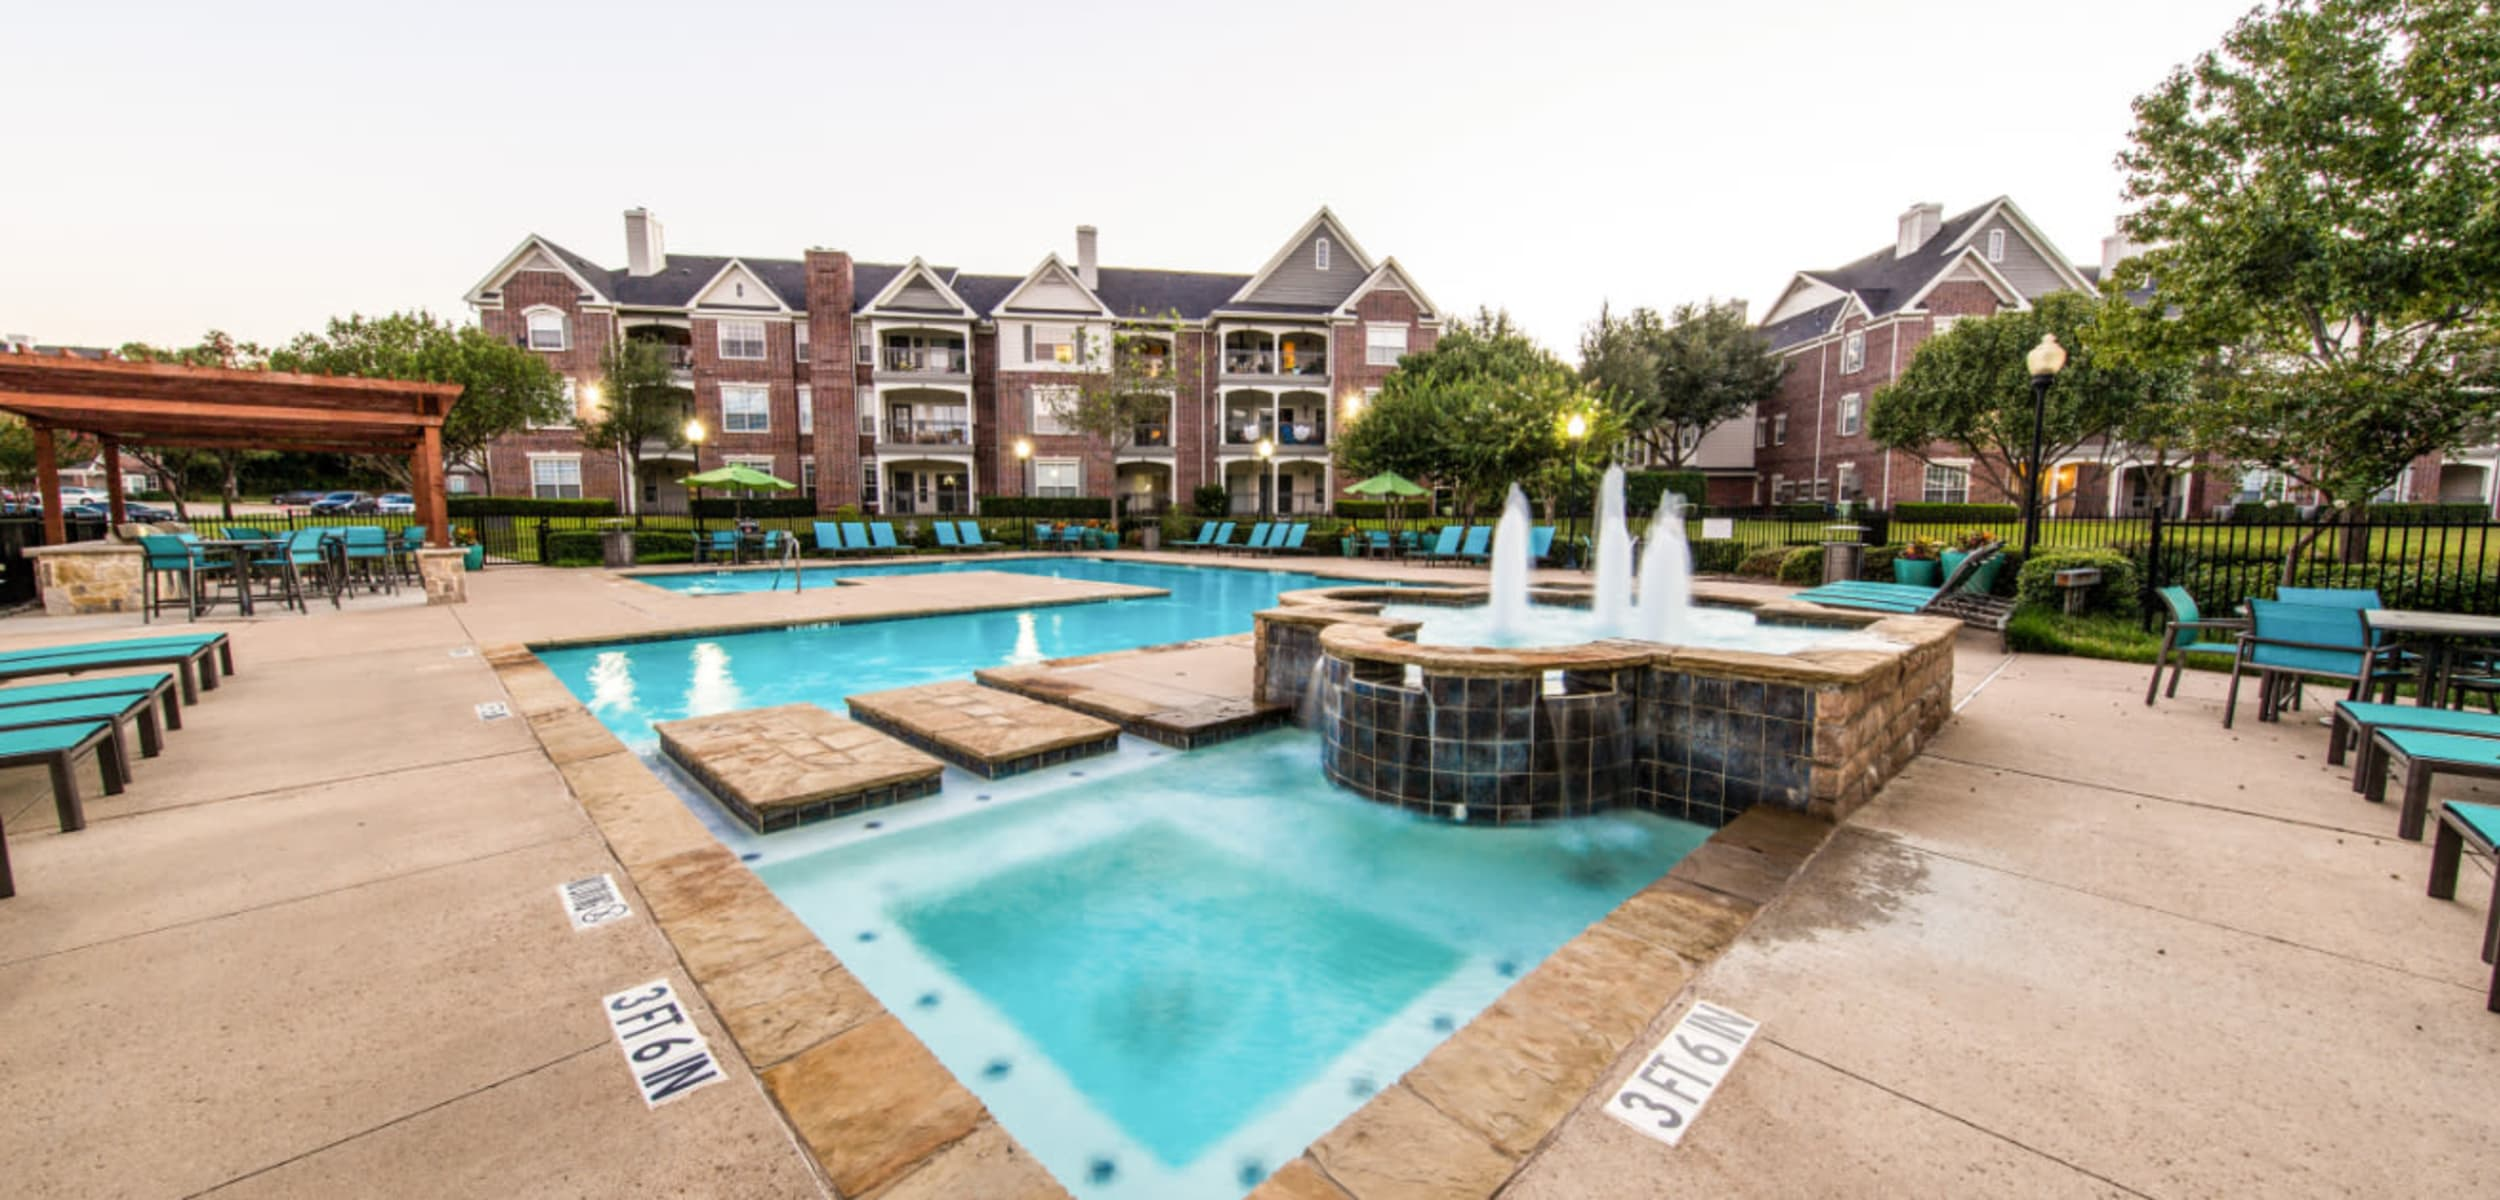 Pool deck and hot tub area with water features at Marquis at Silver Oaks in Grapevine Texas,